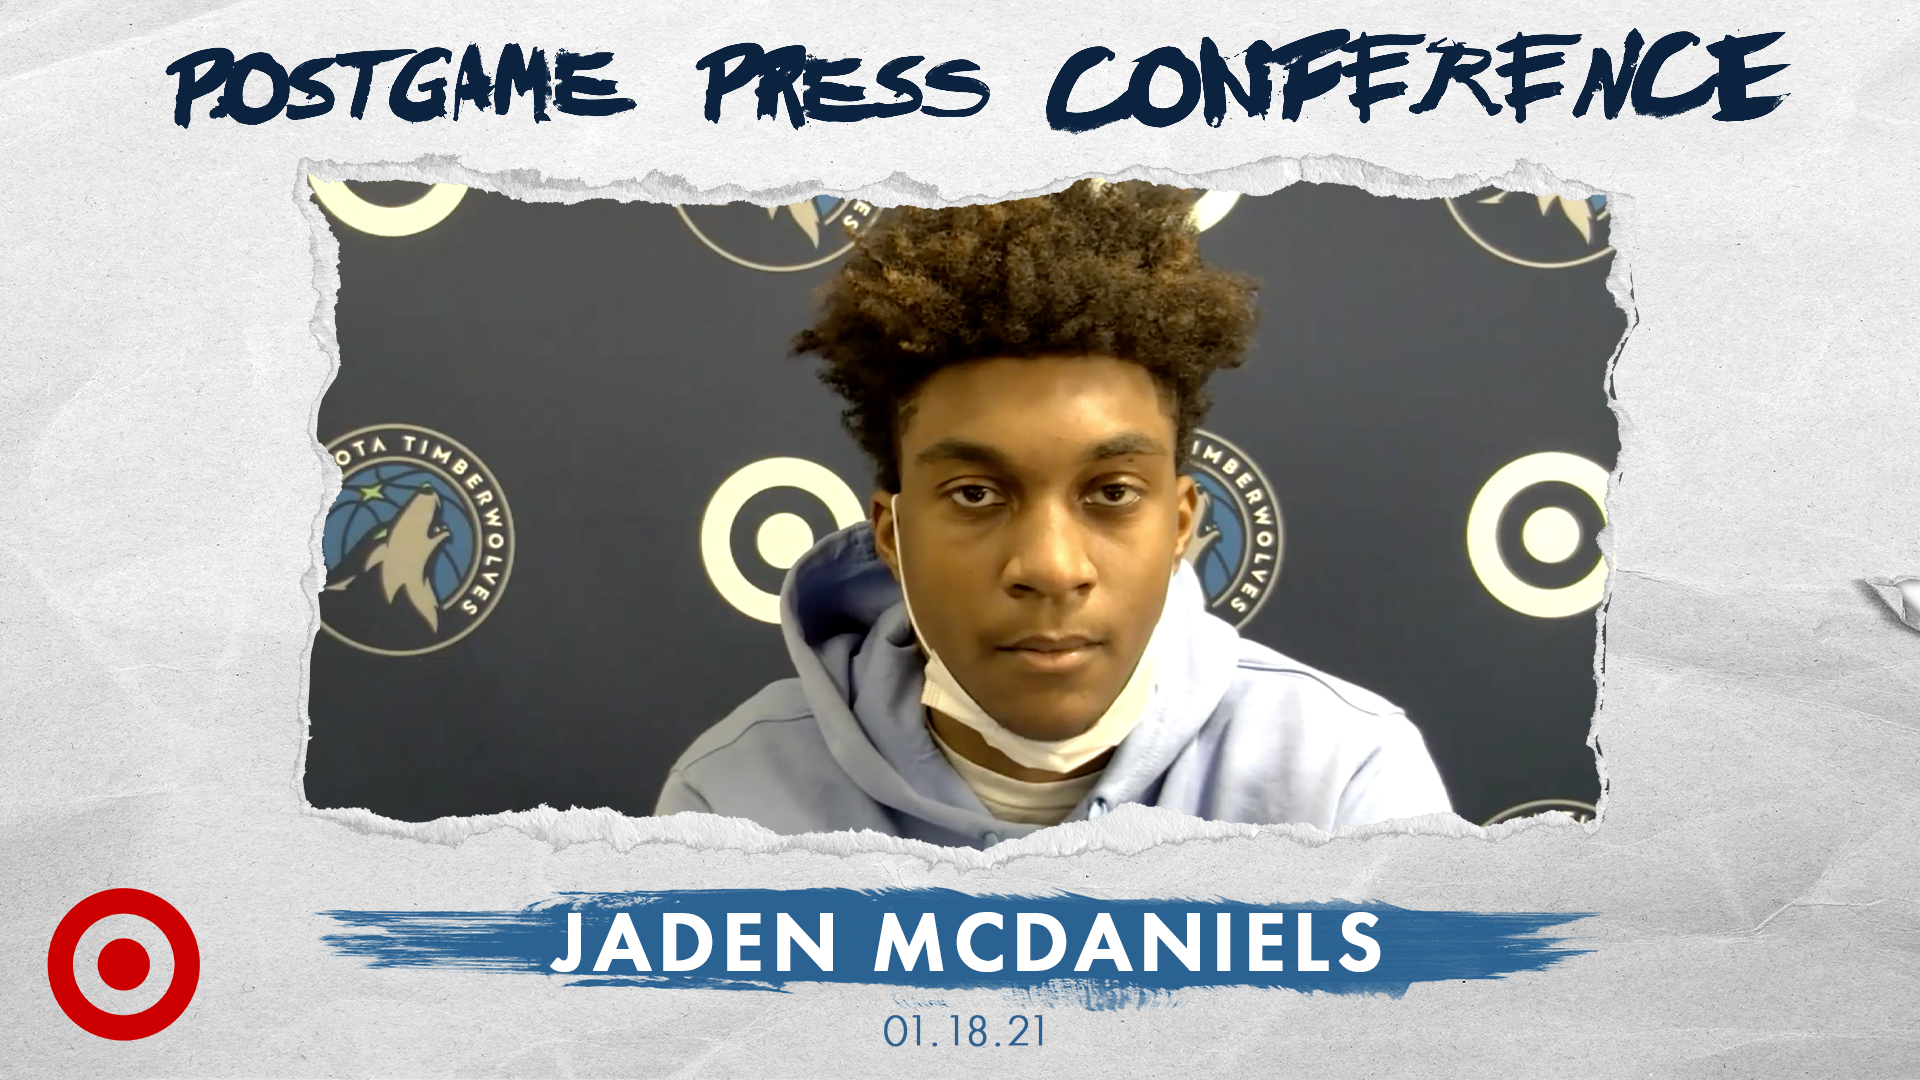 Jaden McDaniels Postgame Press Conference - January 18, 2021